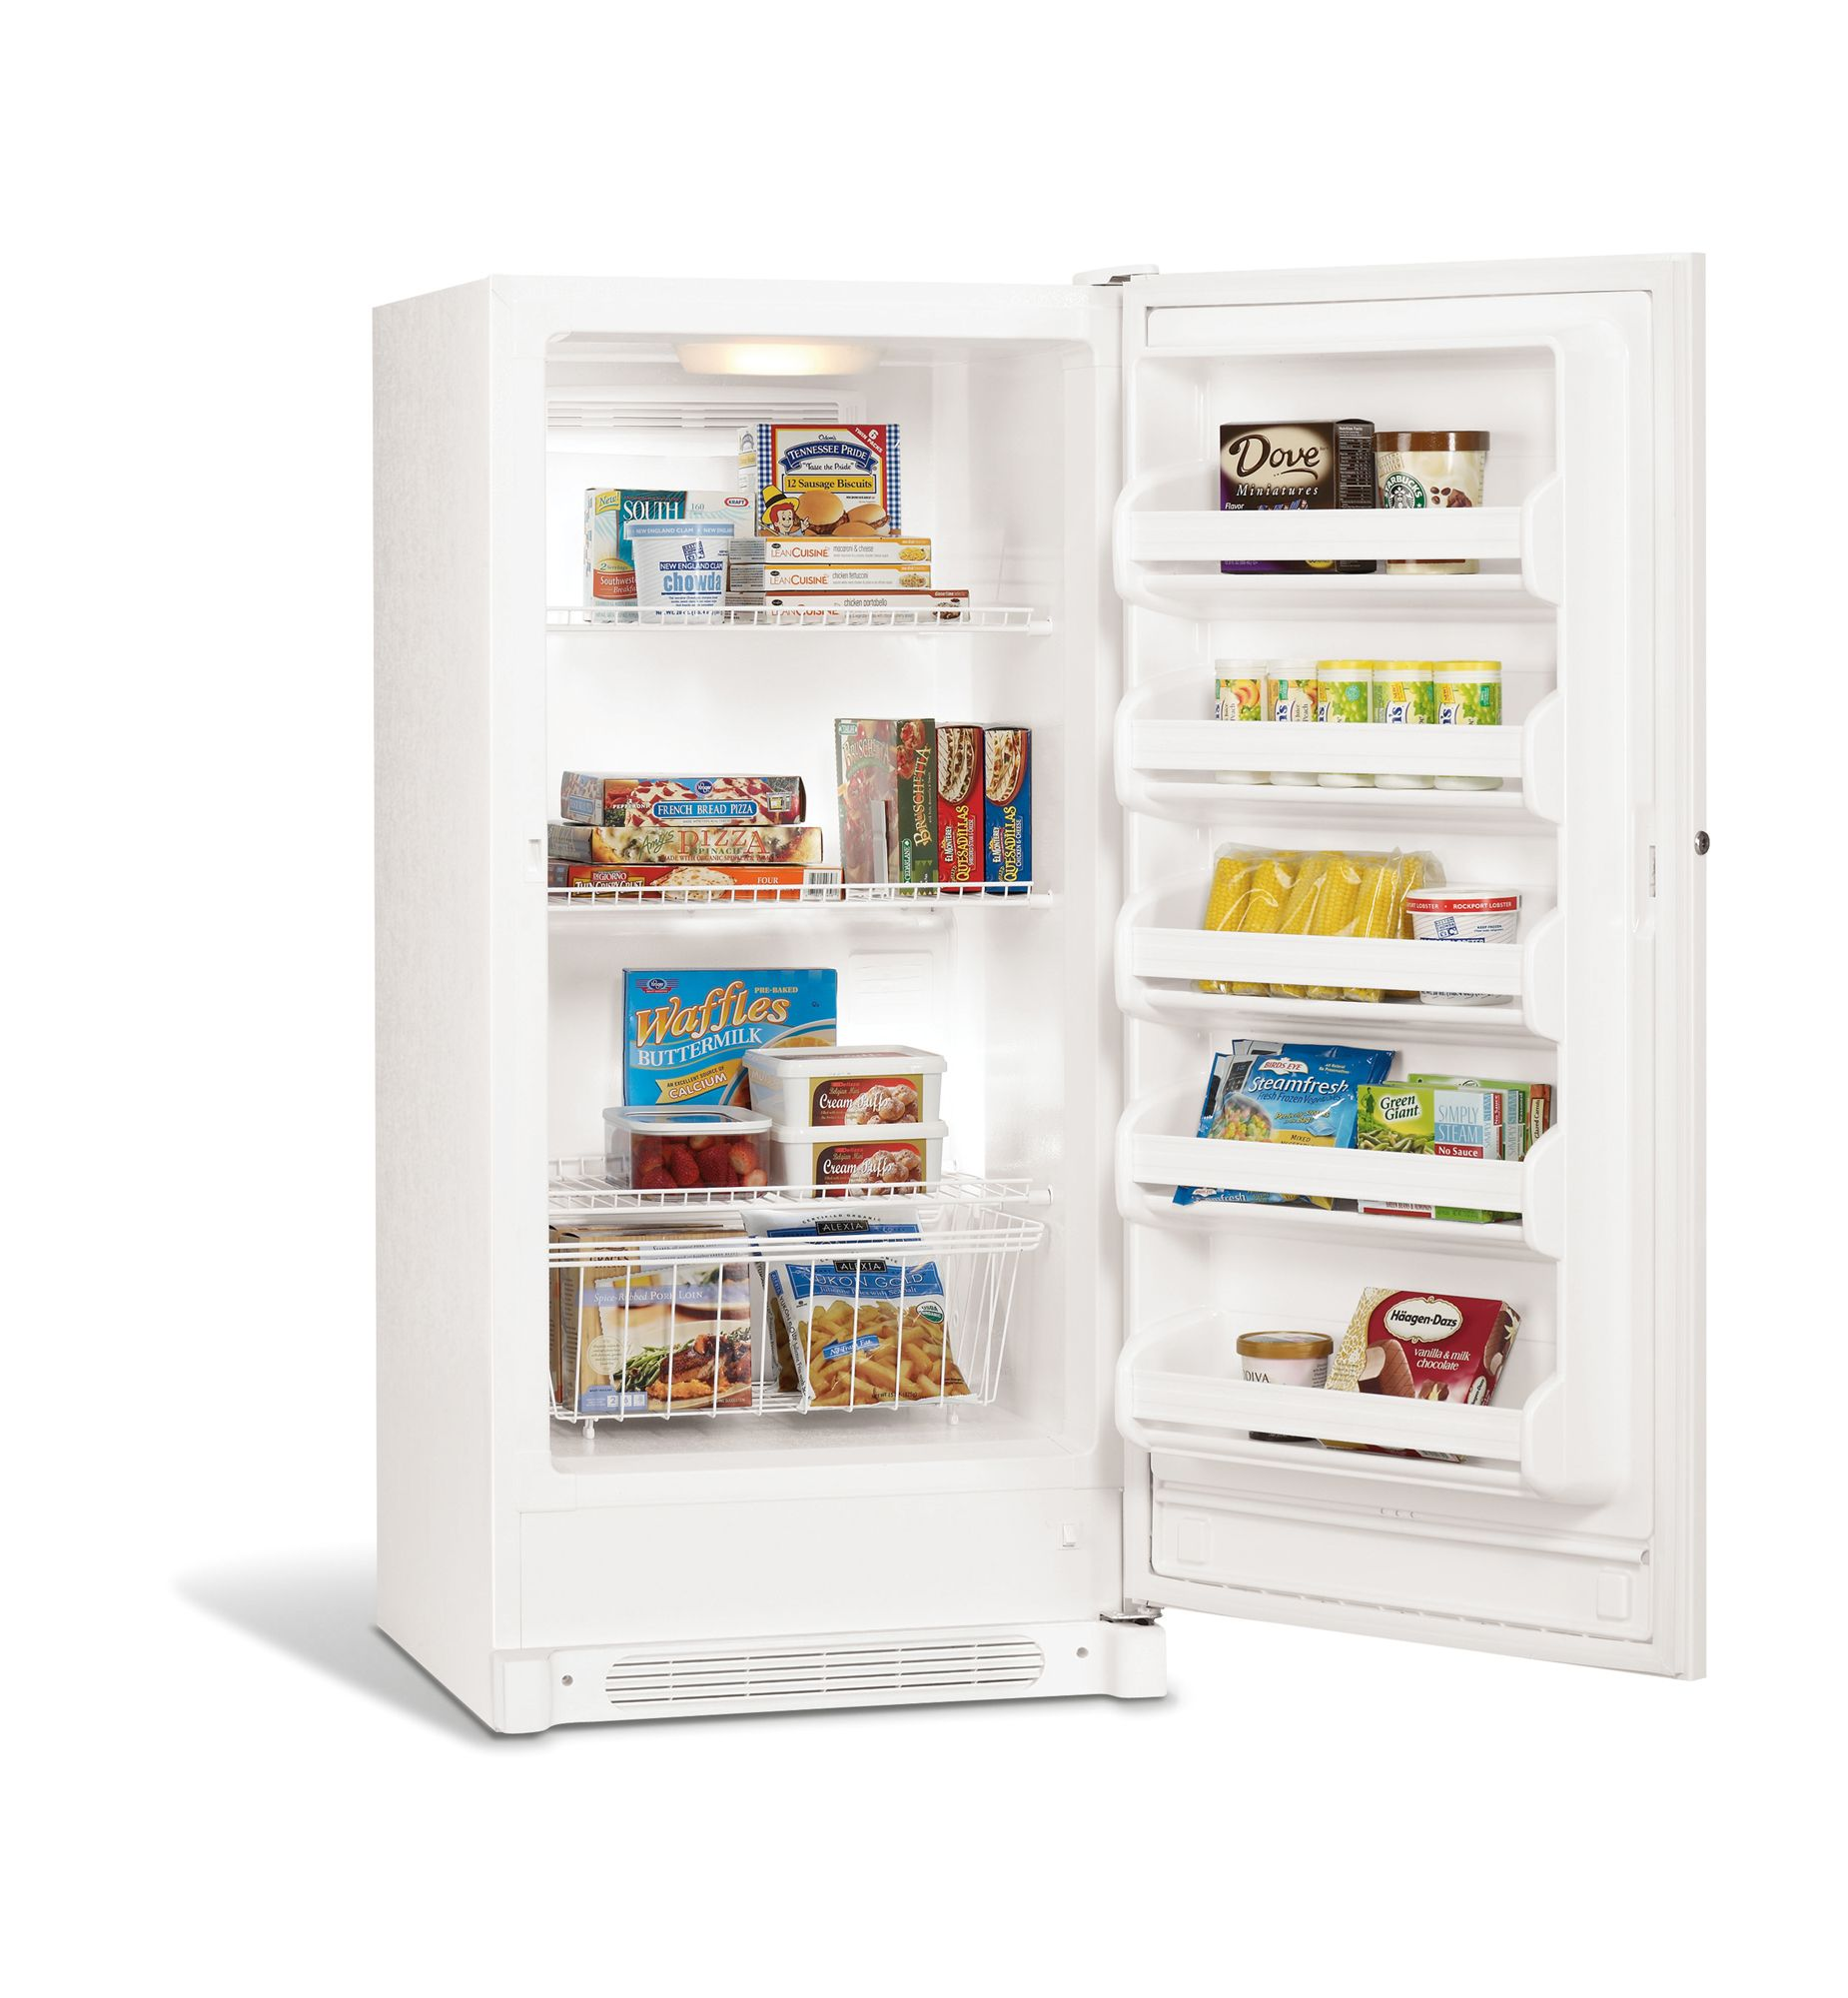 Frigidaire 13.7 cu. ft. Upright Freezer (FFU14F5H)